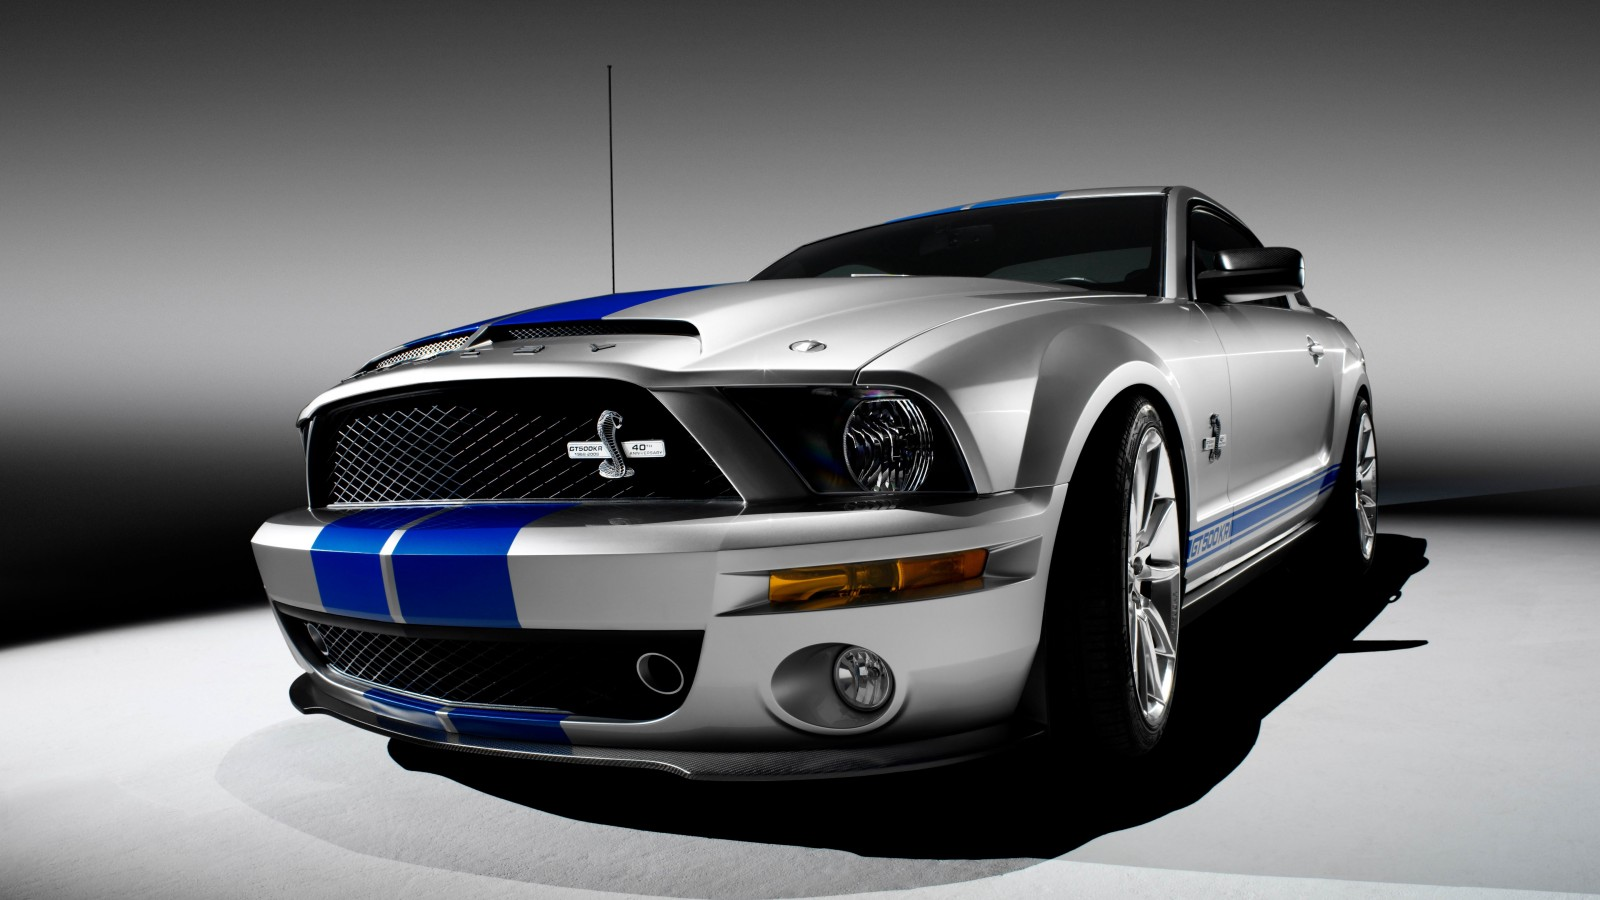 Shelby Mustang GT500KR Wallpaper for Desktop 1600x900